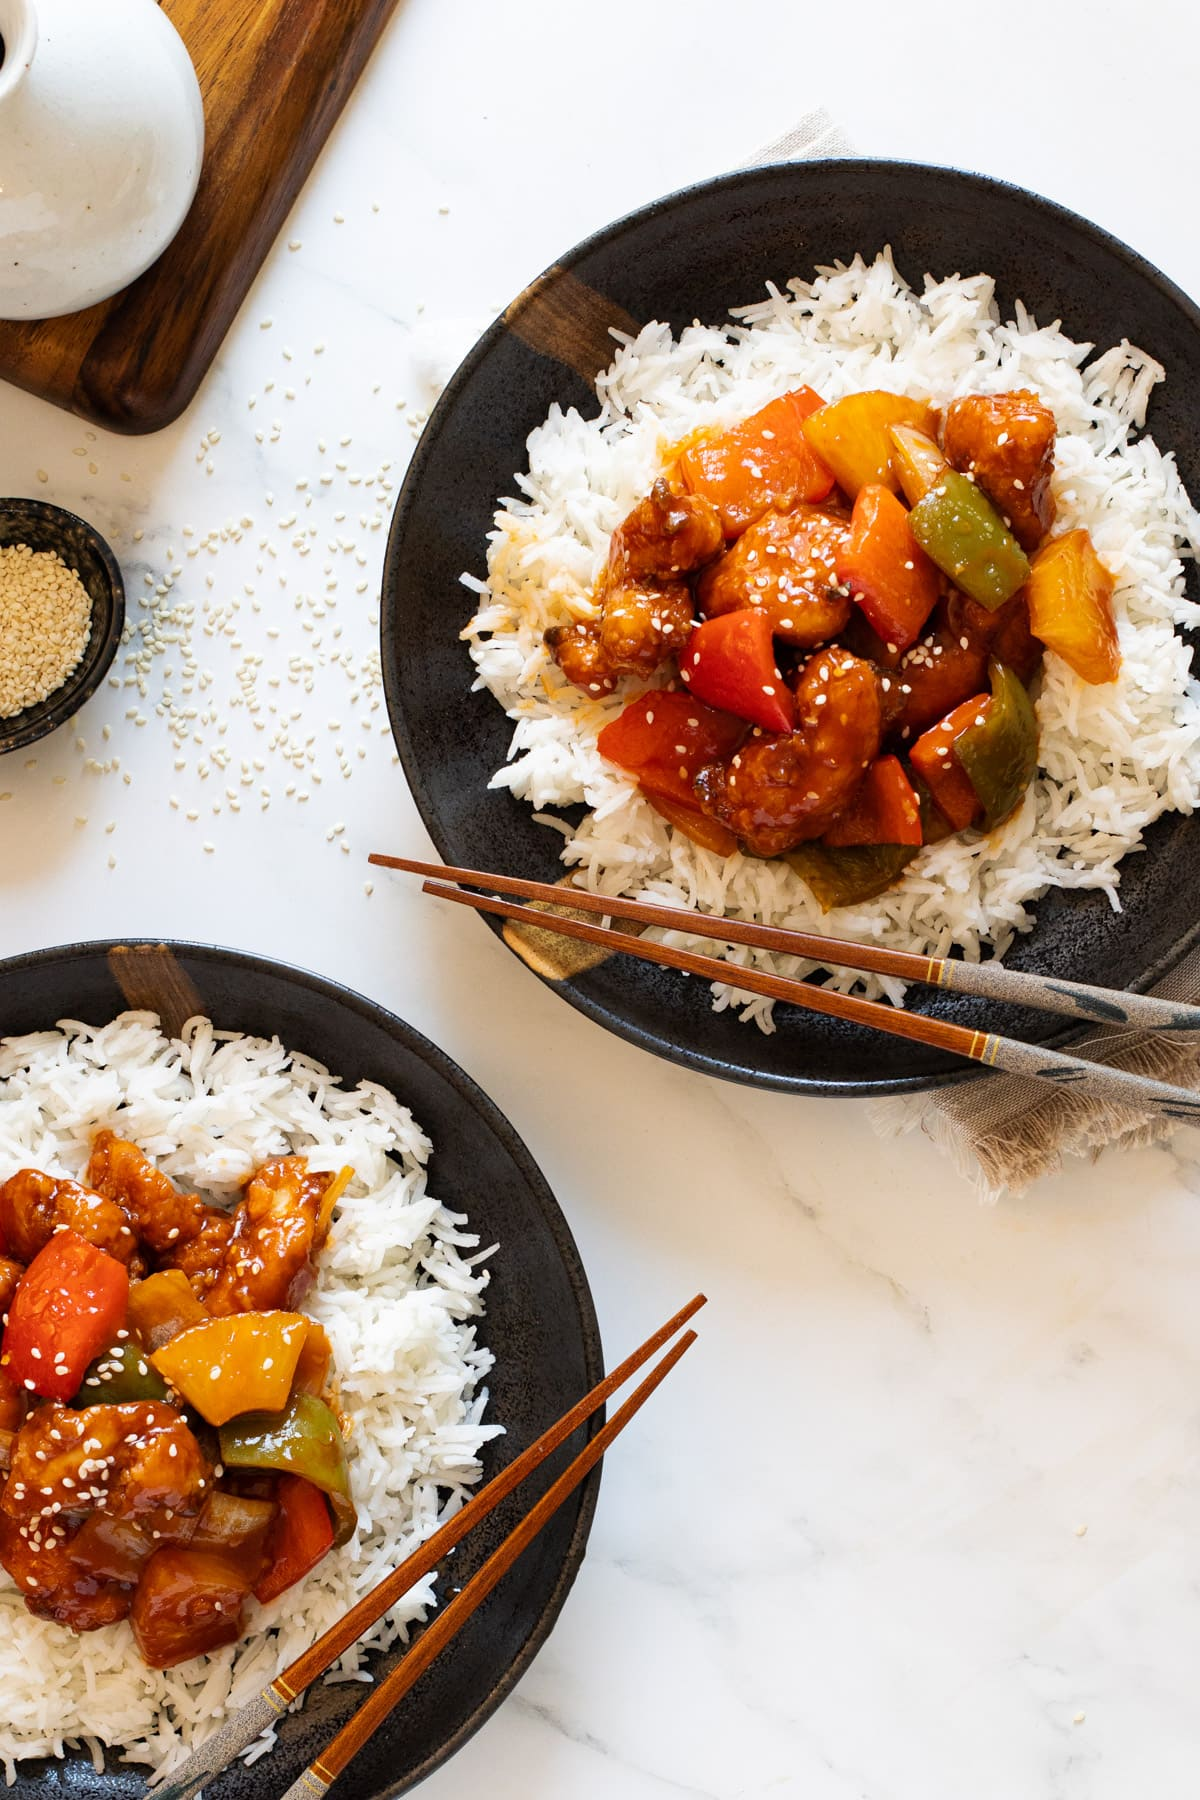 Sweet and Sour Chicken Hong Kong Style in Bowls with Rice